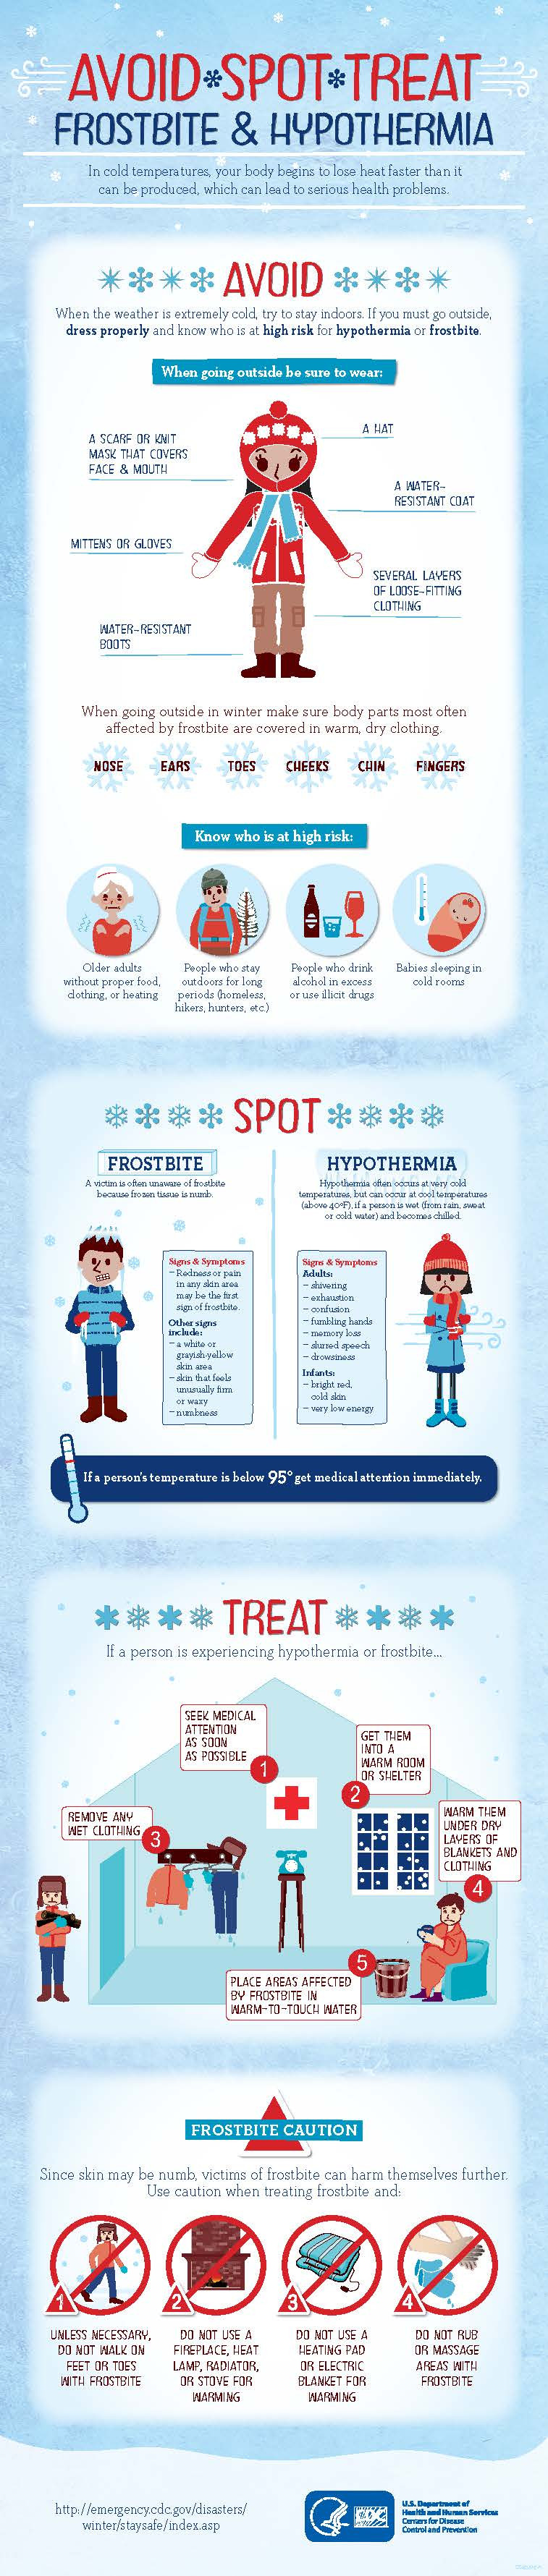 cold weather protection infographic